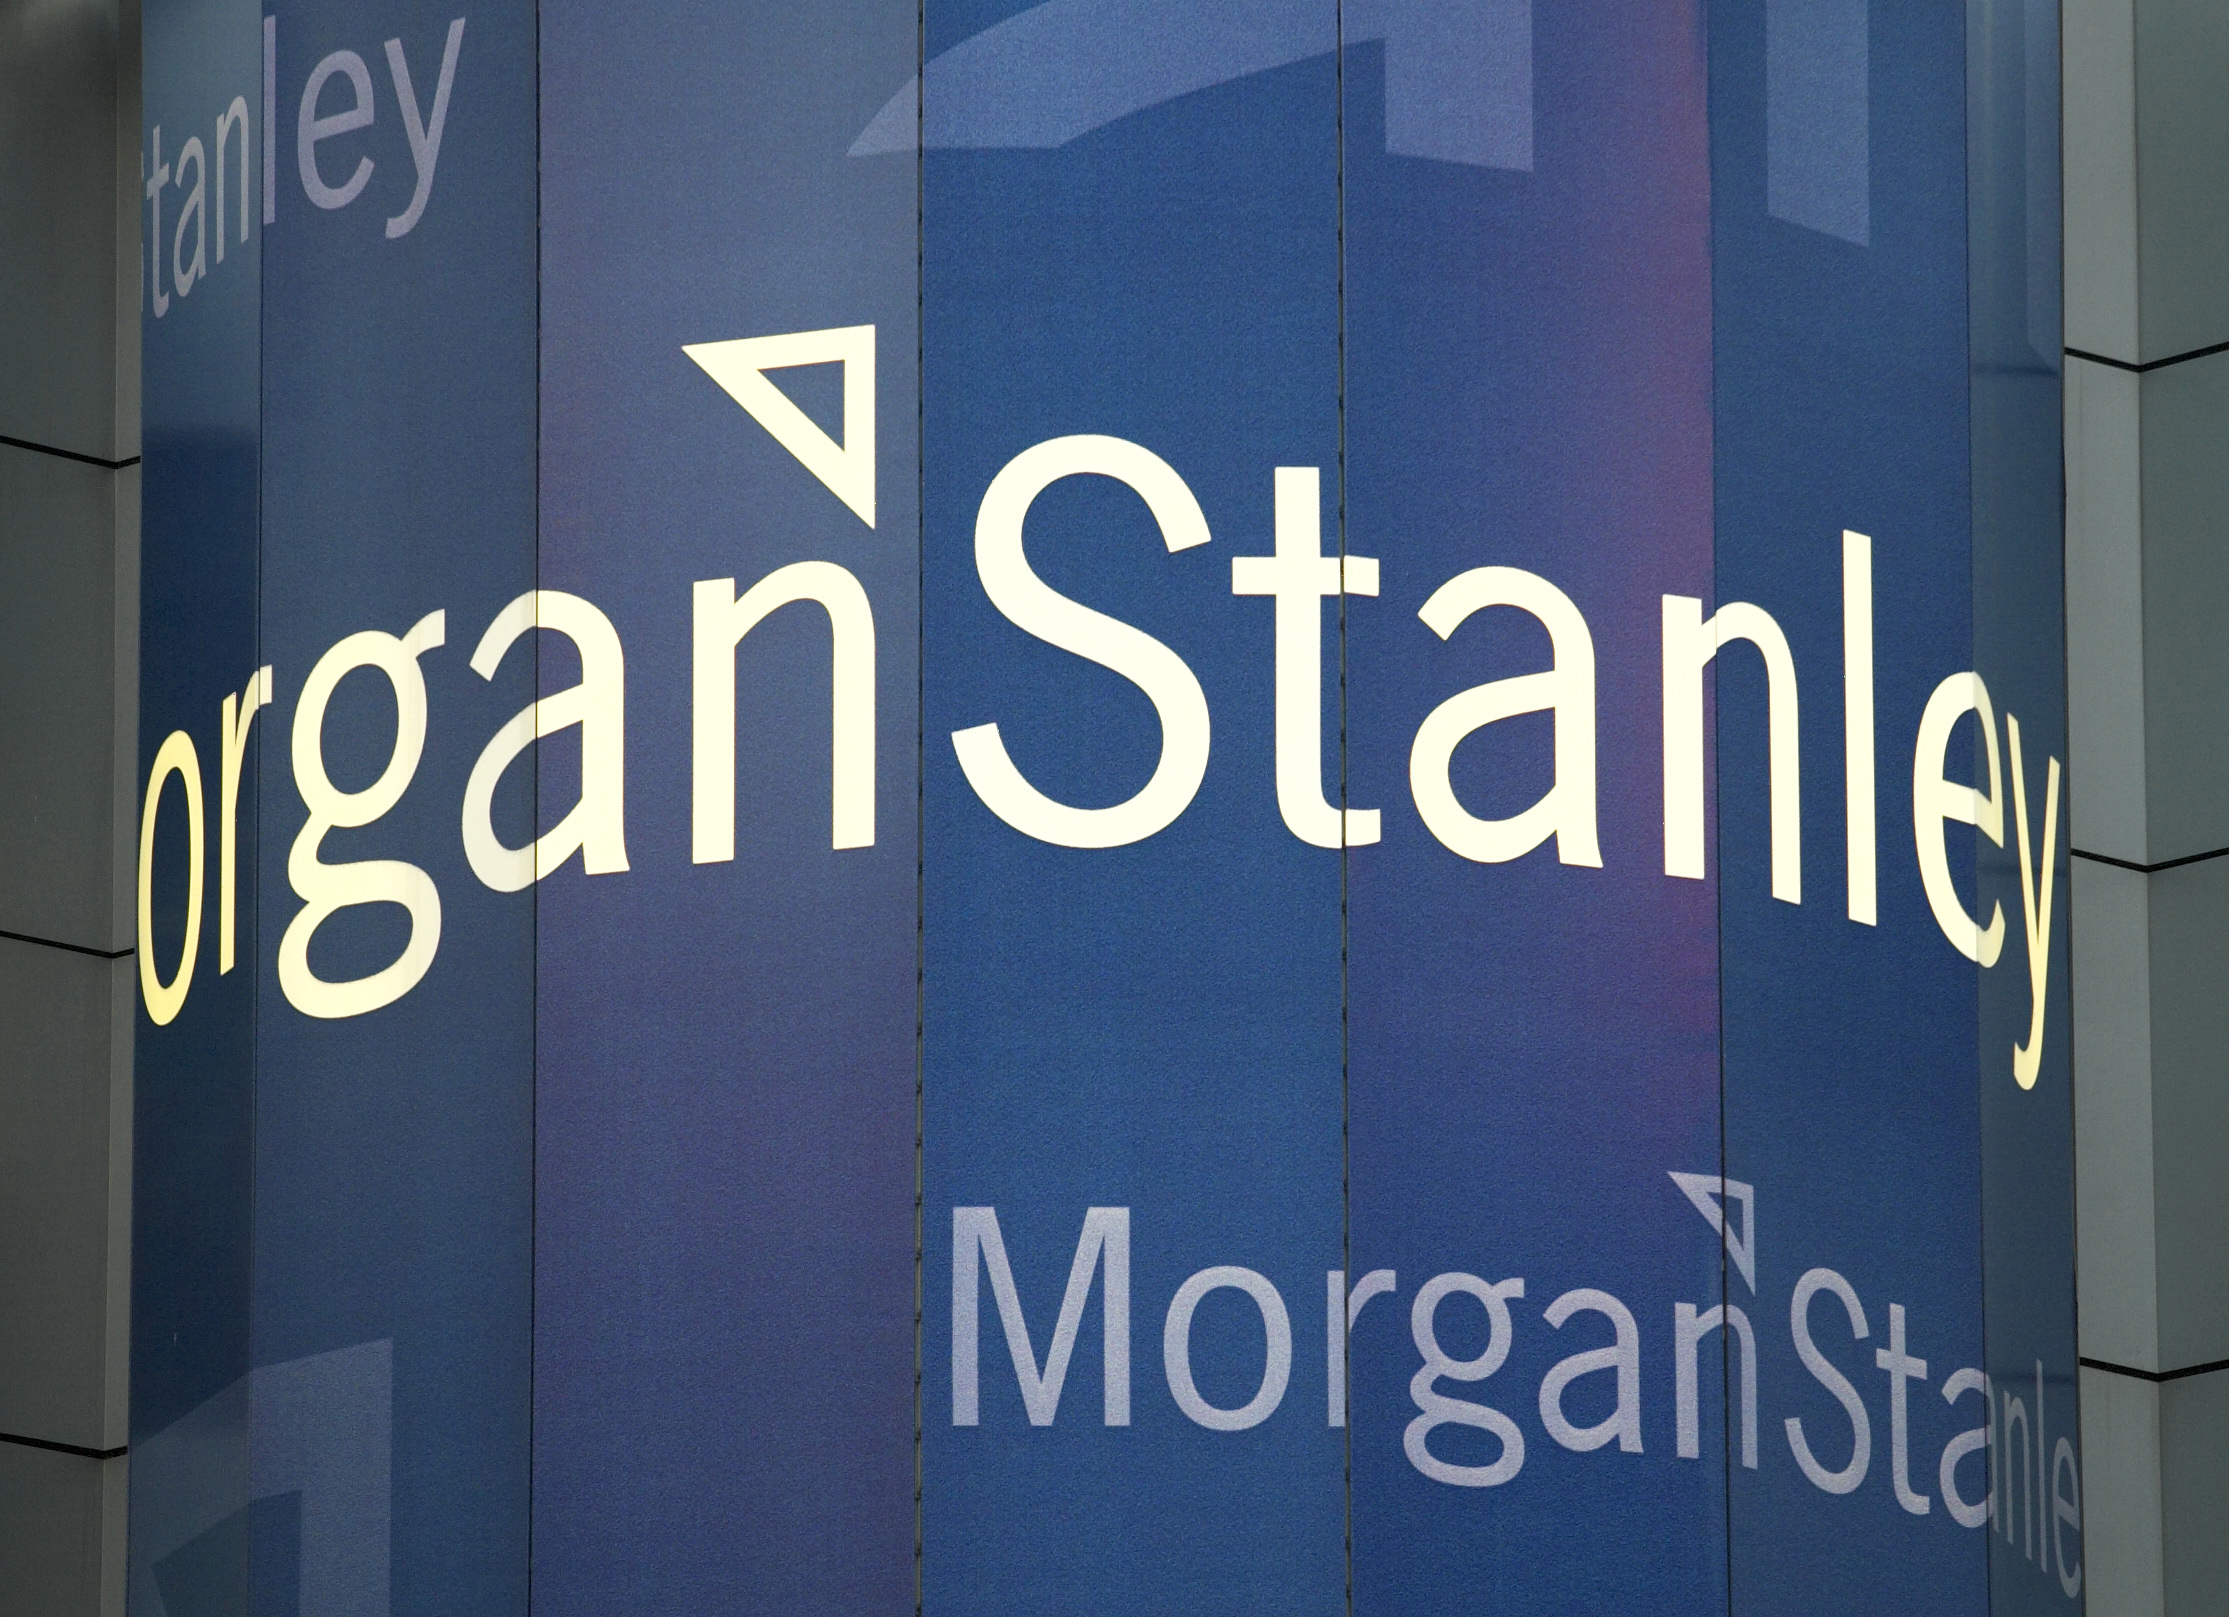 Top Morgan Stanley advisor allegedly abused ex-wives, girlfriends: Report